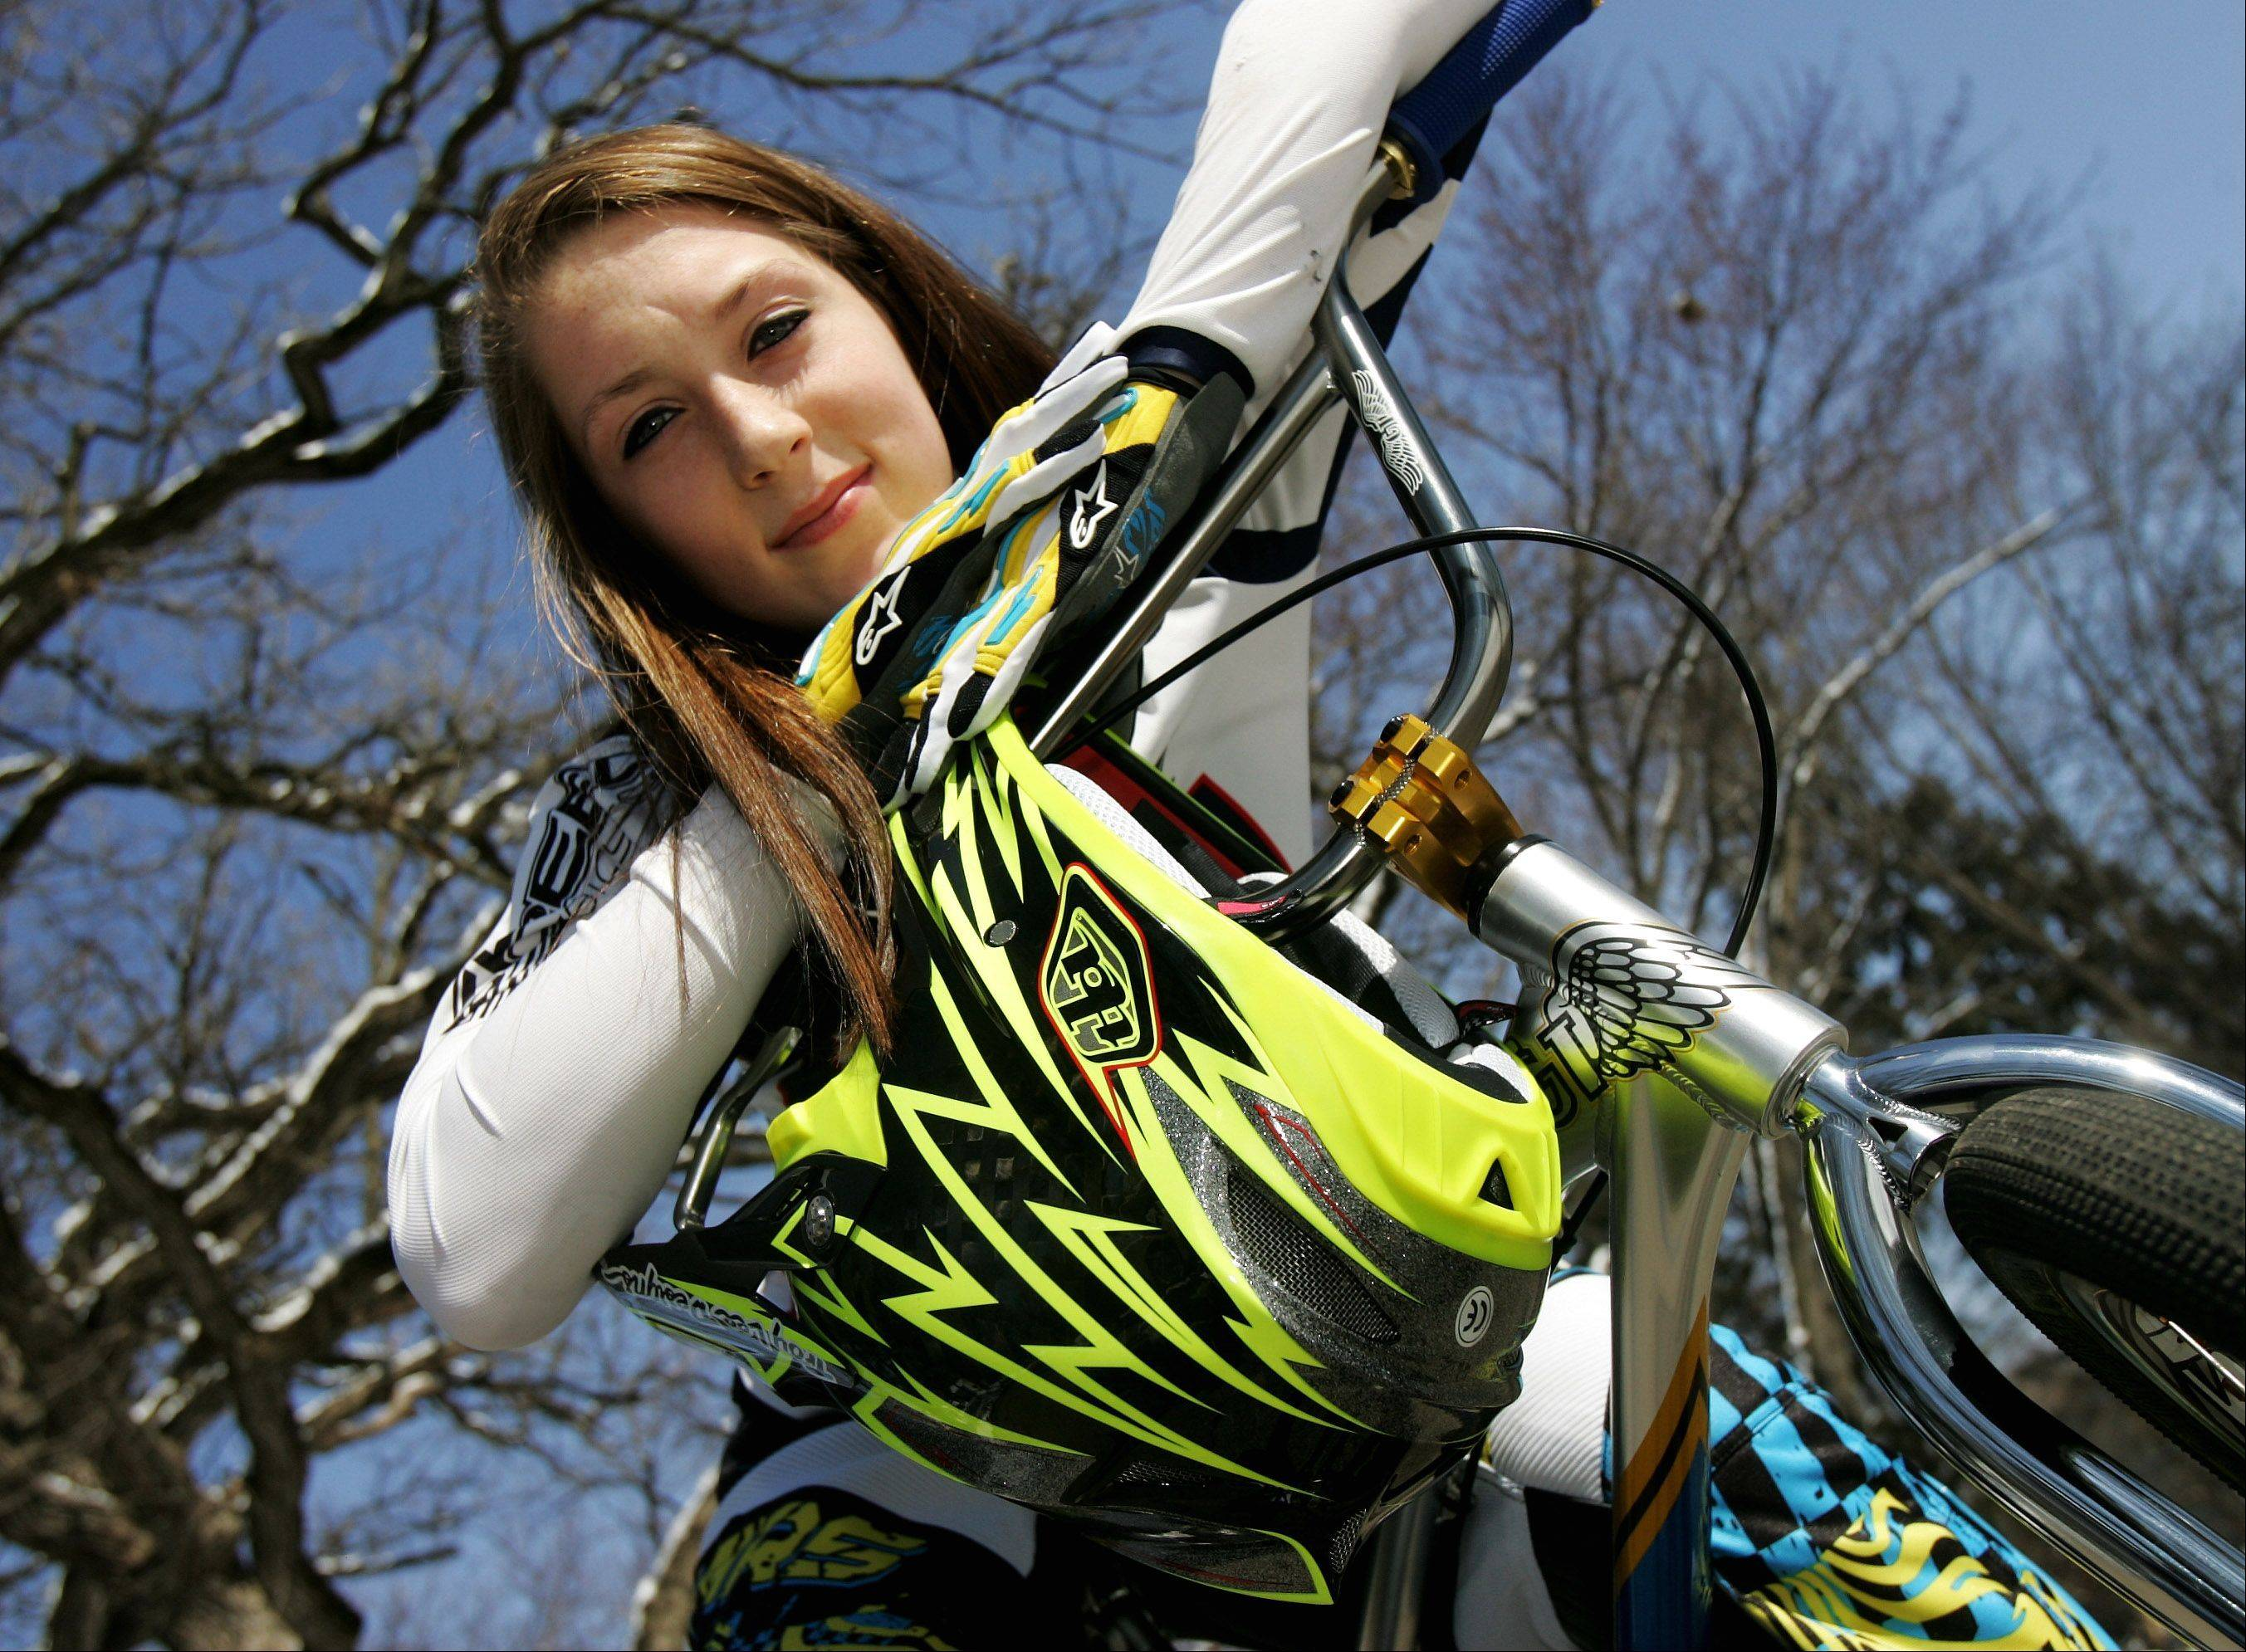 Lake Villa teen collecting BMX world titles on way to Olympics